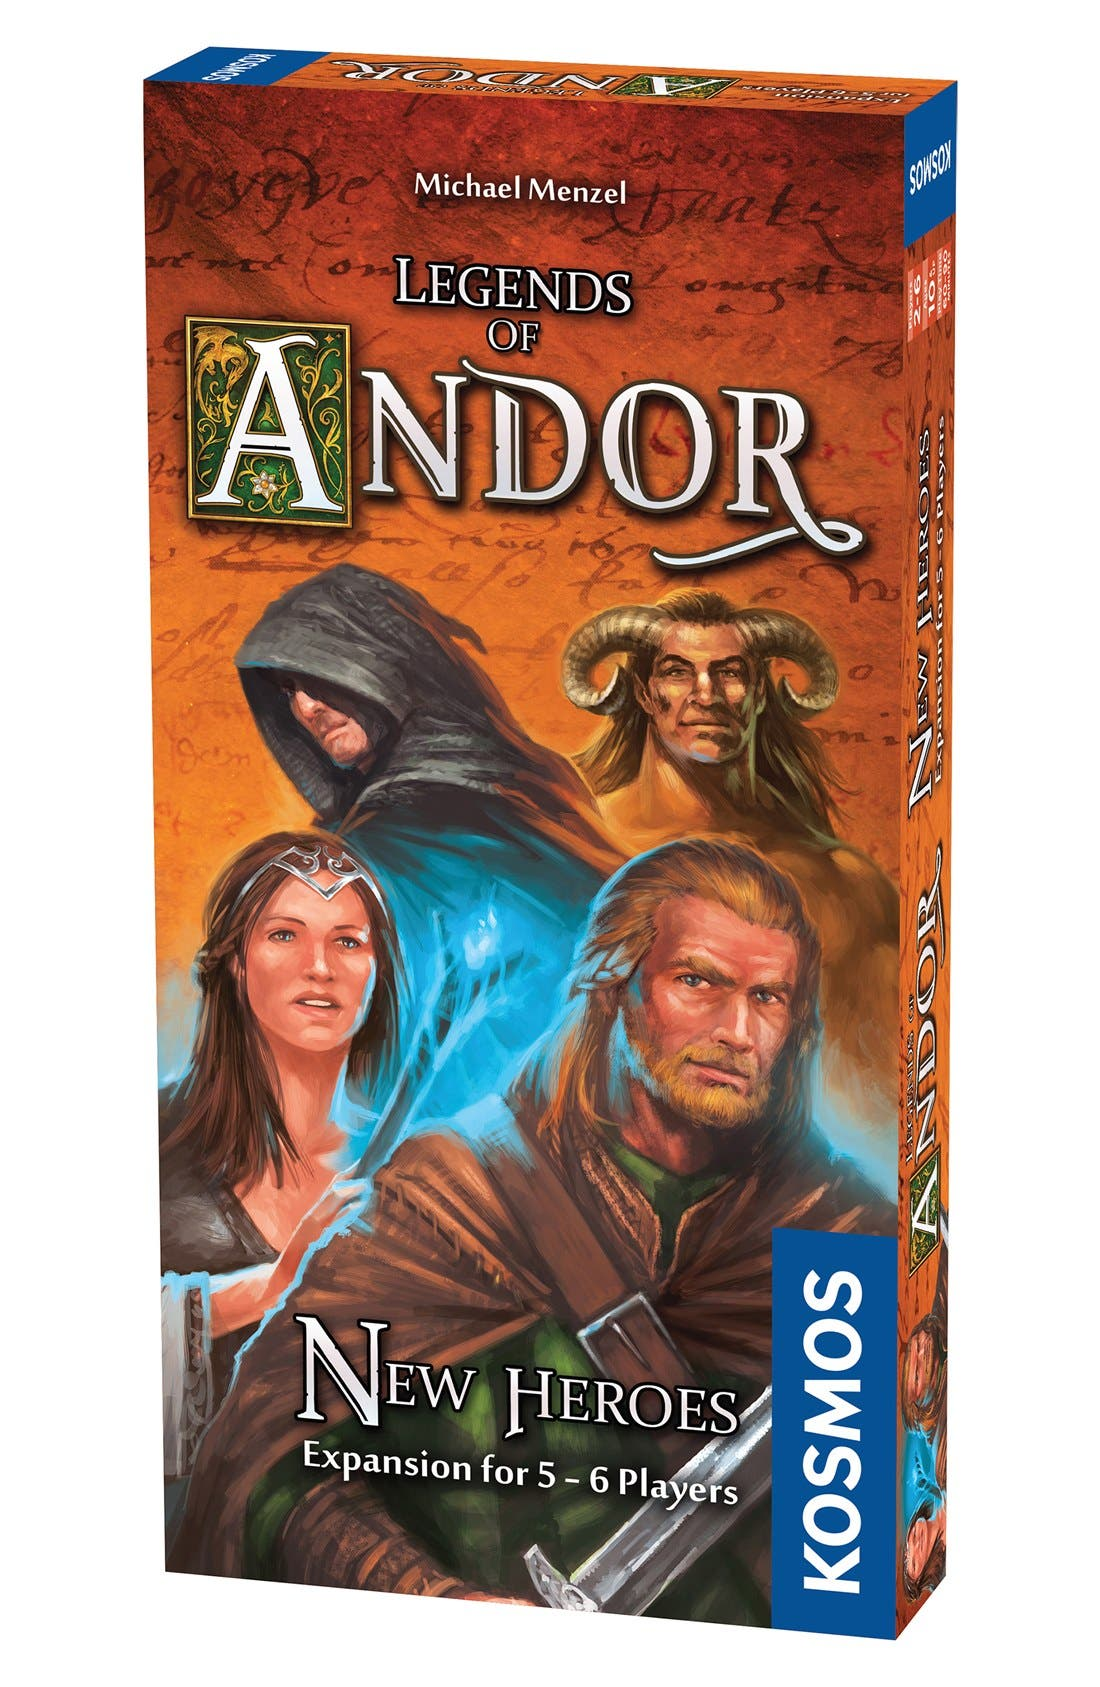 Main Image - Thames & Kosmos 'Legends of Andor - New Heroes' Game Expansion Pack